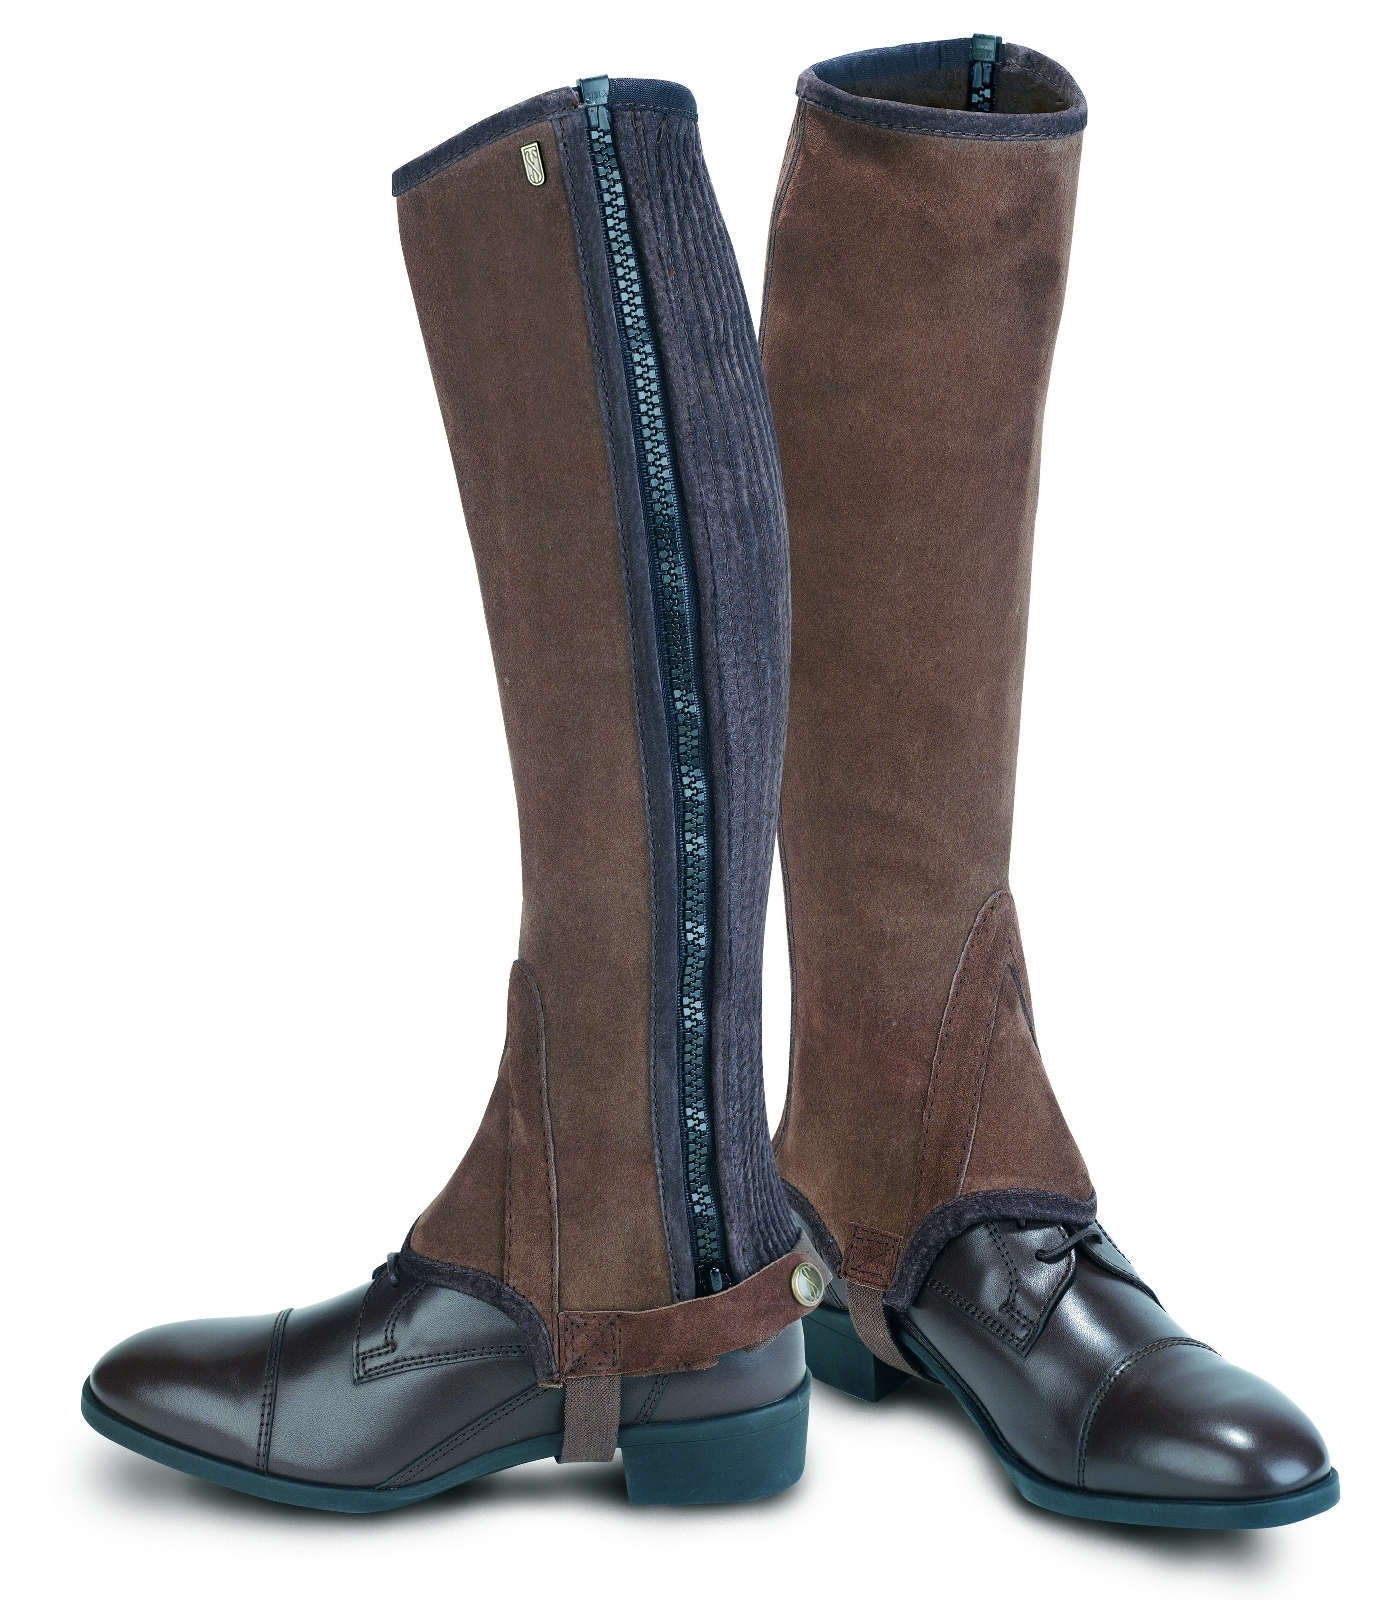 Tredstep Ireland Original Side Zip Chaps